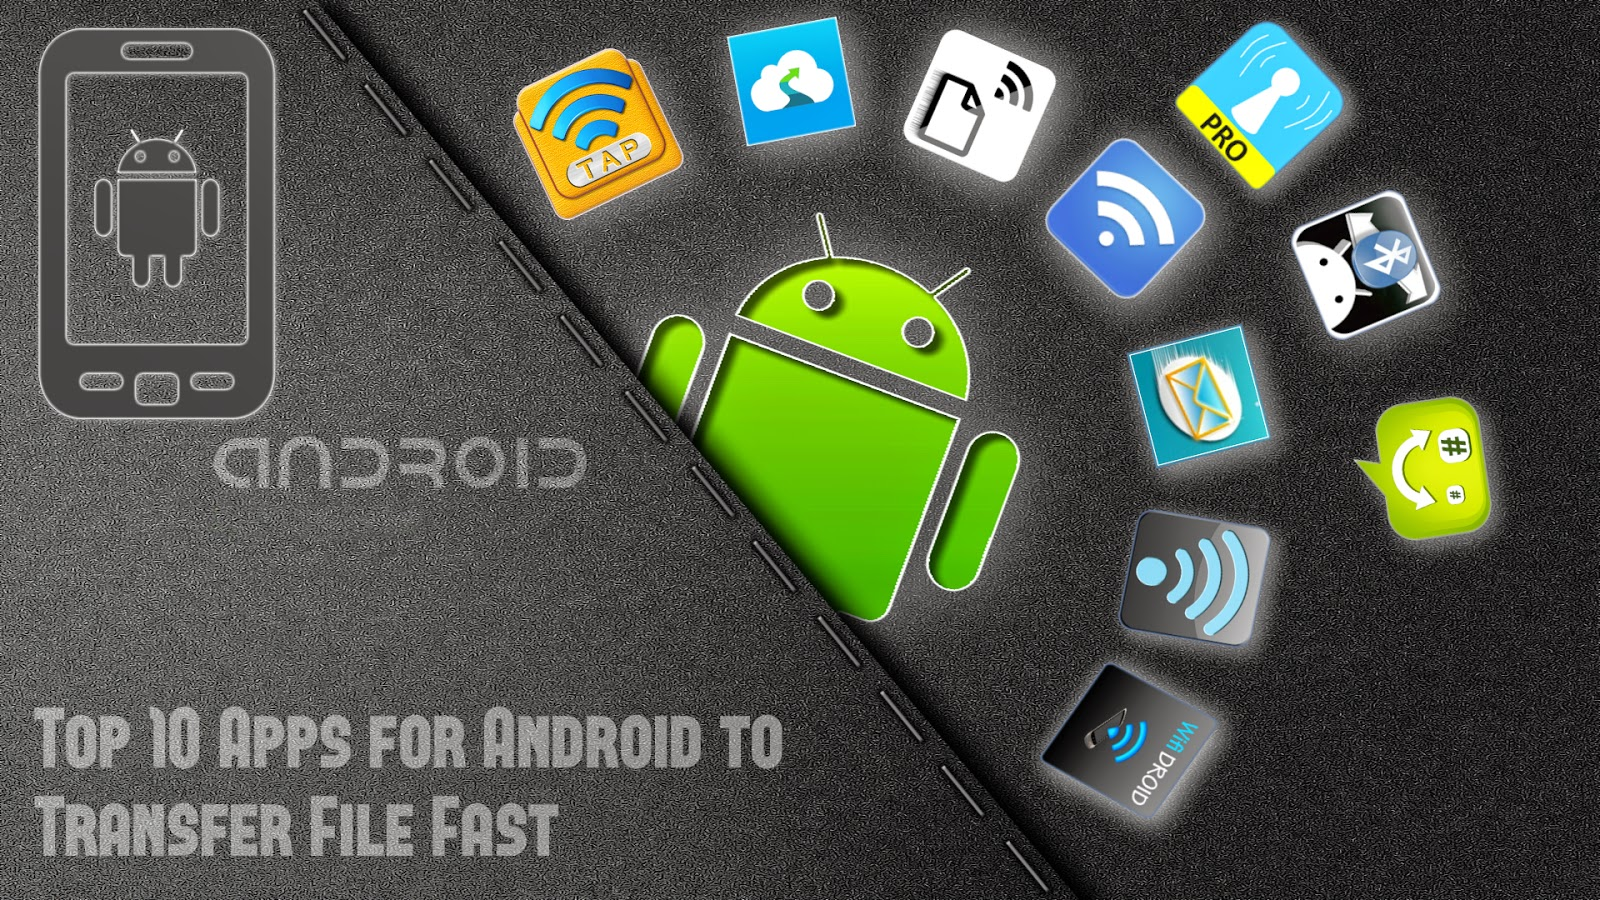 Top 10 Apps for Android to Transfer File Fast